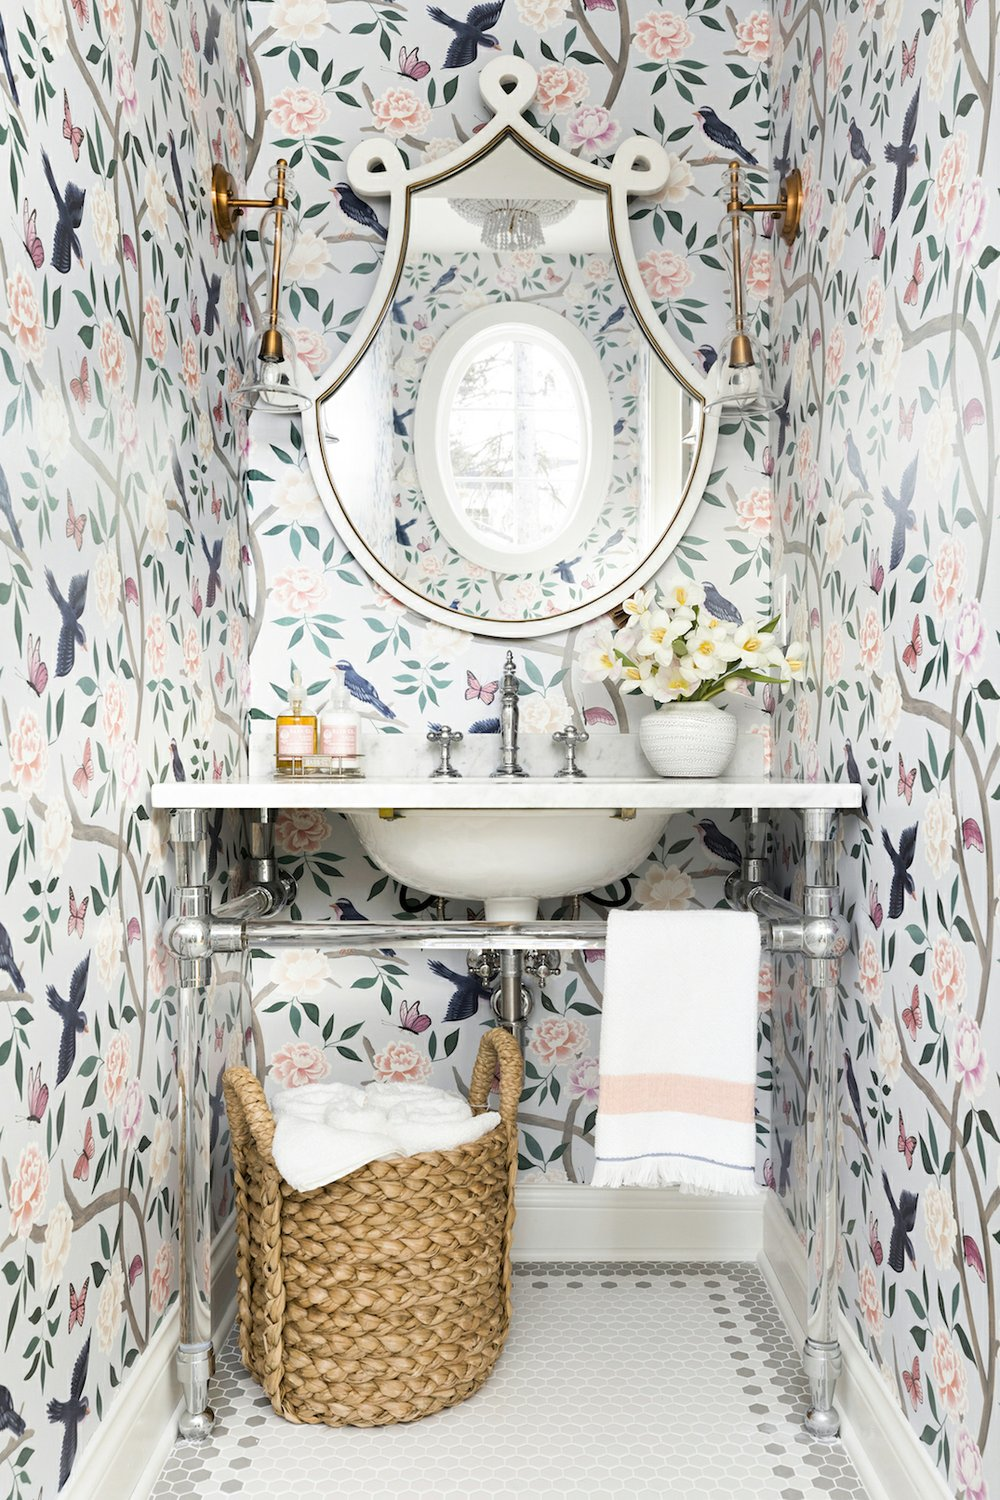 A powder room by Bria Hammel pairs a more subdued mosaic floor with bold wallpaper. MUST CREDIT: Spacecrafting Photography